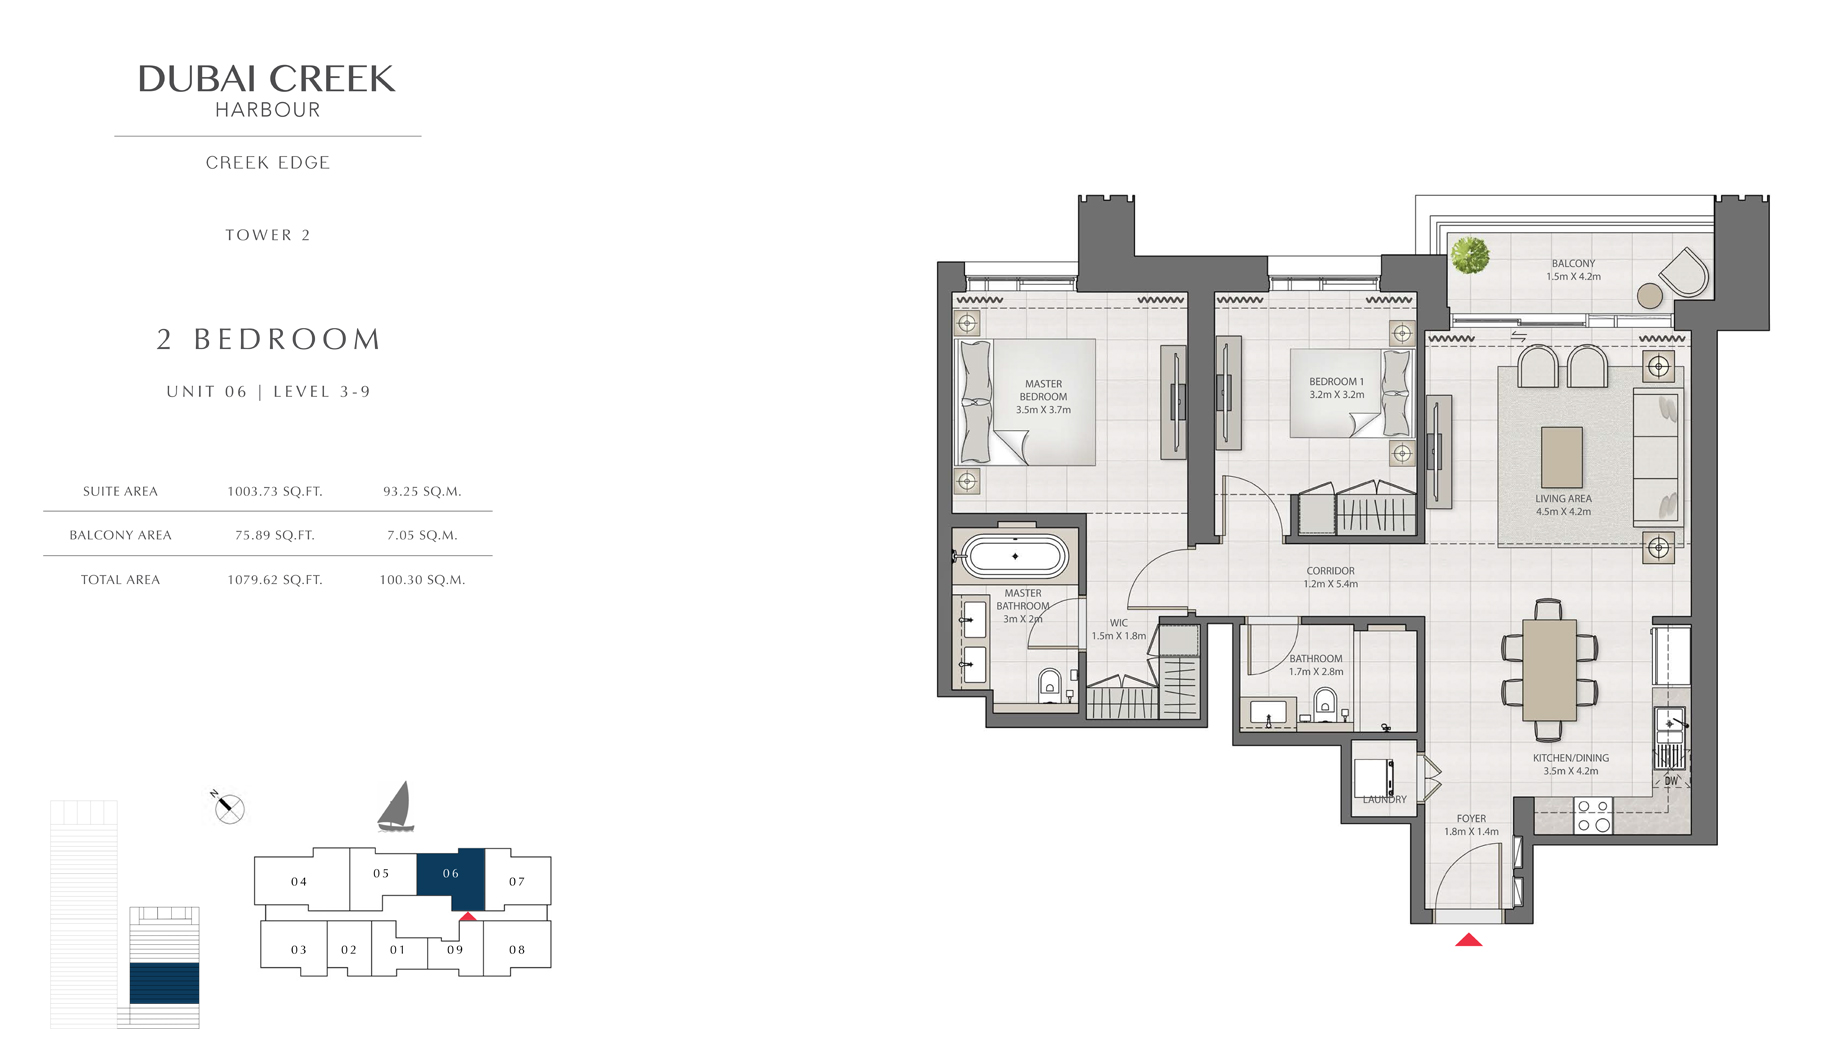 2 Bedroom Tower 2 Unit 06 Level 3-9 Size 1079 sq.ft